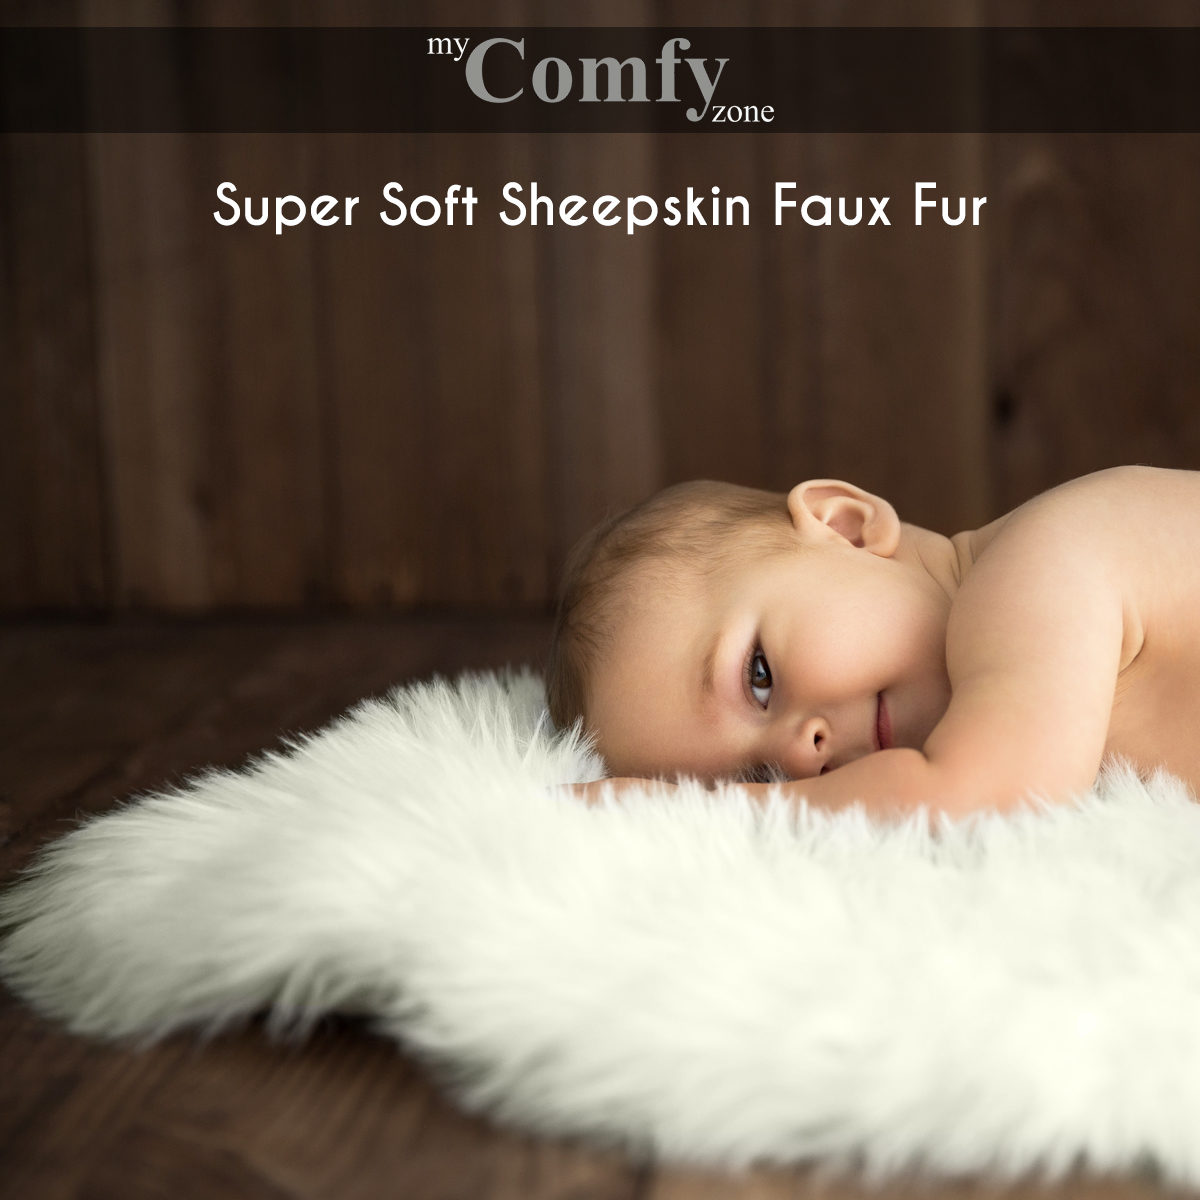 Picture of: Sheepskin Faux Fur Chair Cover Rug Seat Pad Area Rugs For Bedroom Sofa Floor Vanity Nursery Decor Ivory Home Decor Area Rugs Sheepskin Faux Fur Rug My Comfy Zone